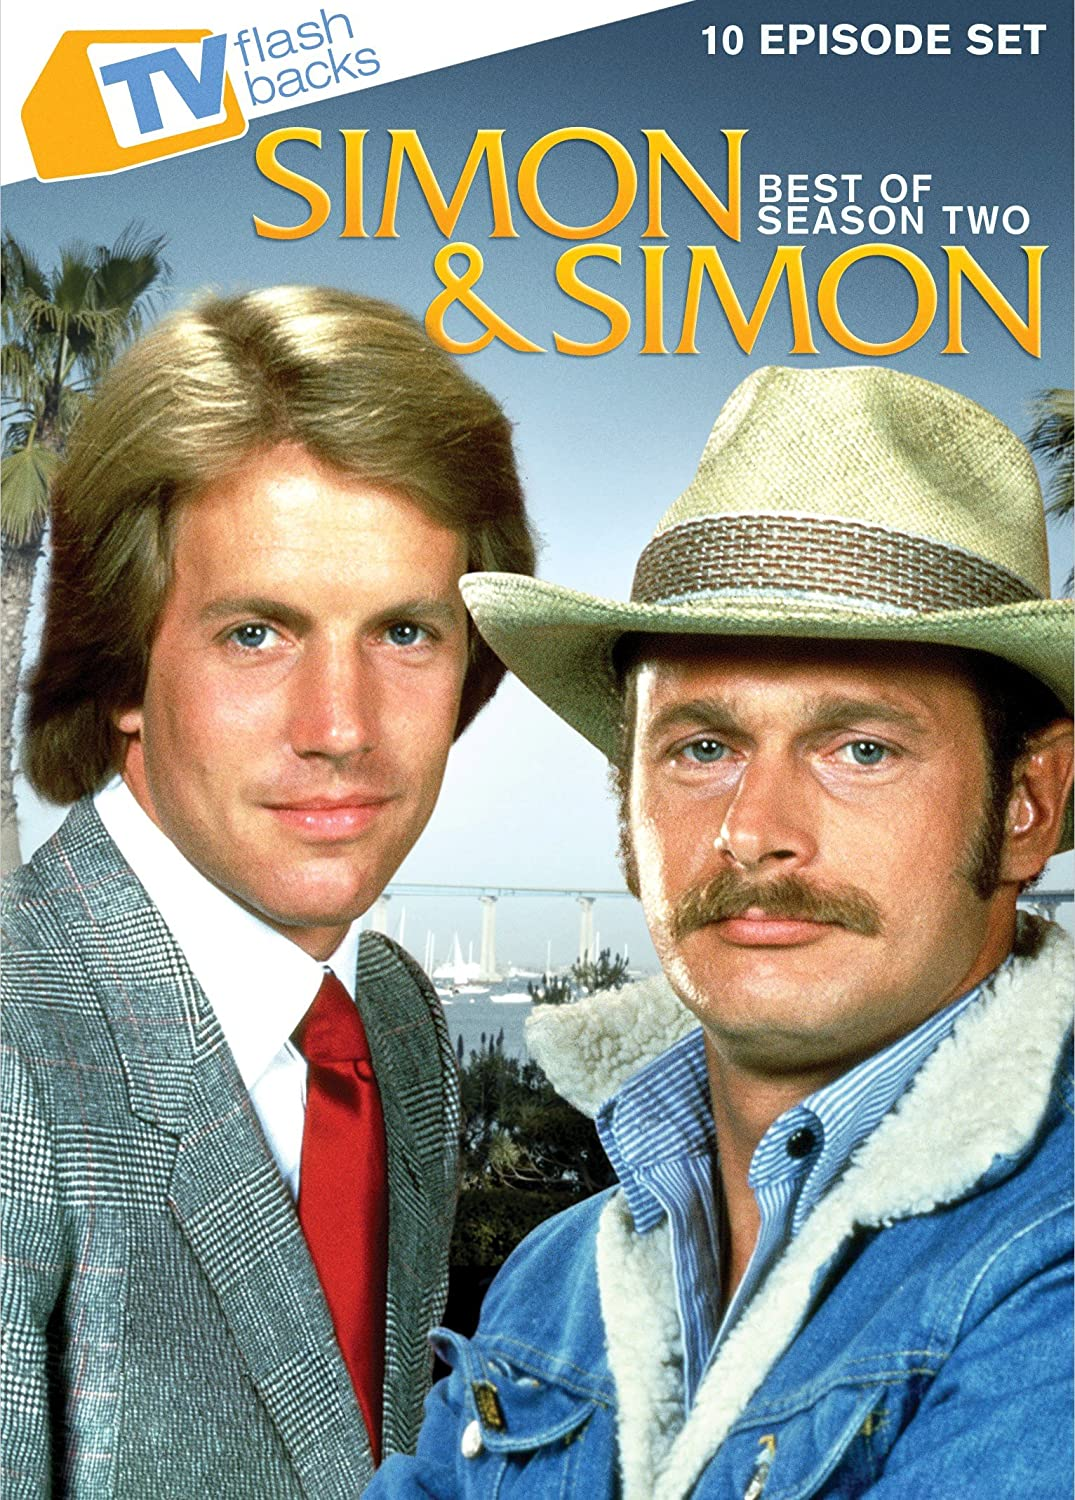 Amazon.com: Simon & Simon - The Best Of Season 2: Gerald McRaney, Jameson  Parker, Eddie Barth, Tim Reid, Mary Carver, Various: Movies & TV